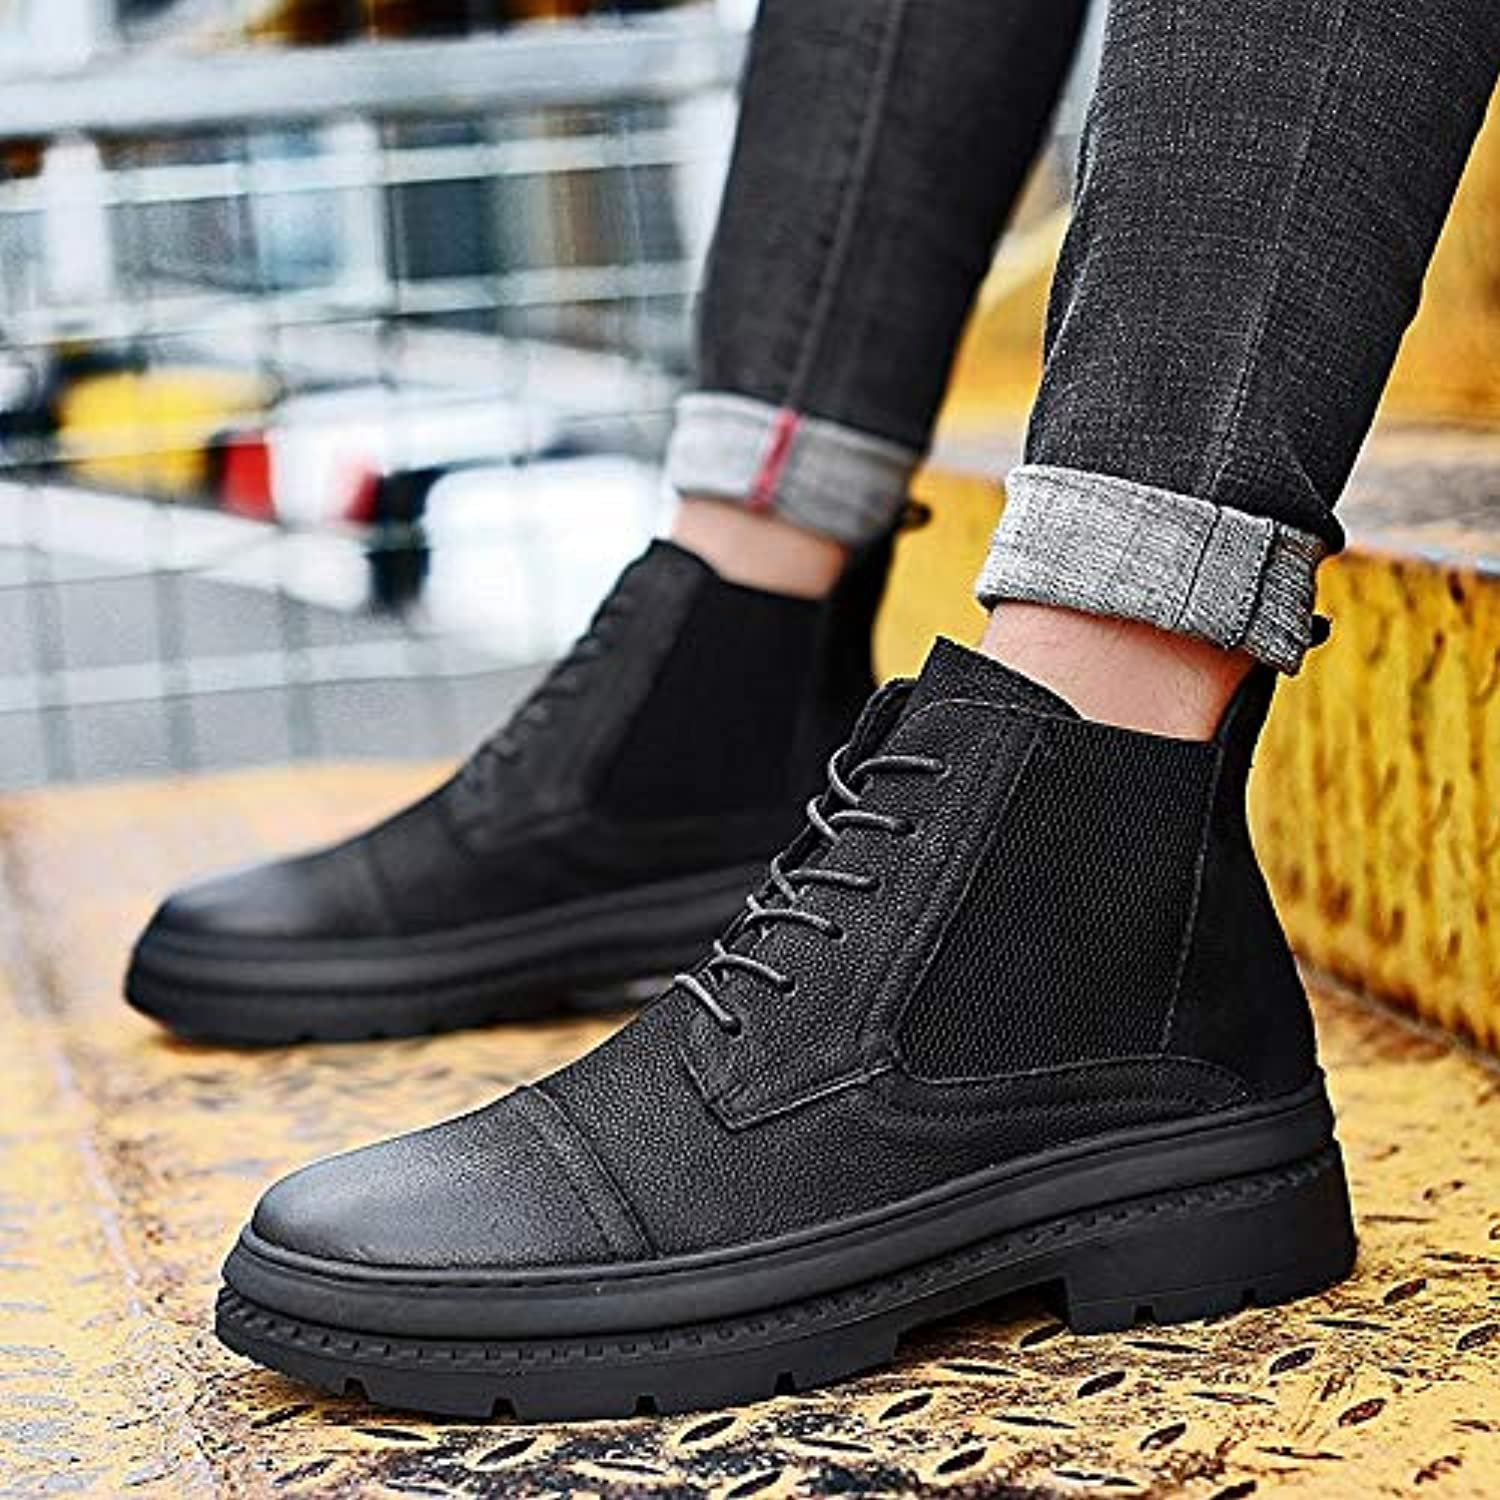 LOVDRAM Boots Men's Winter New Men'S shoes Leather shoes High To Help Leather Large Size shoes Martin Boots Large Size 38 47 Yards Single shoes